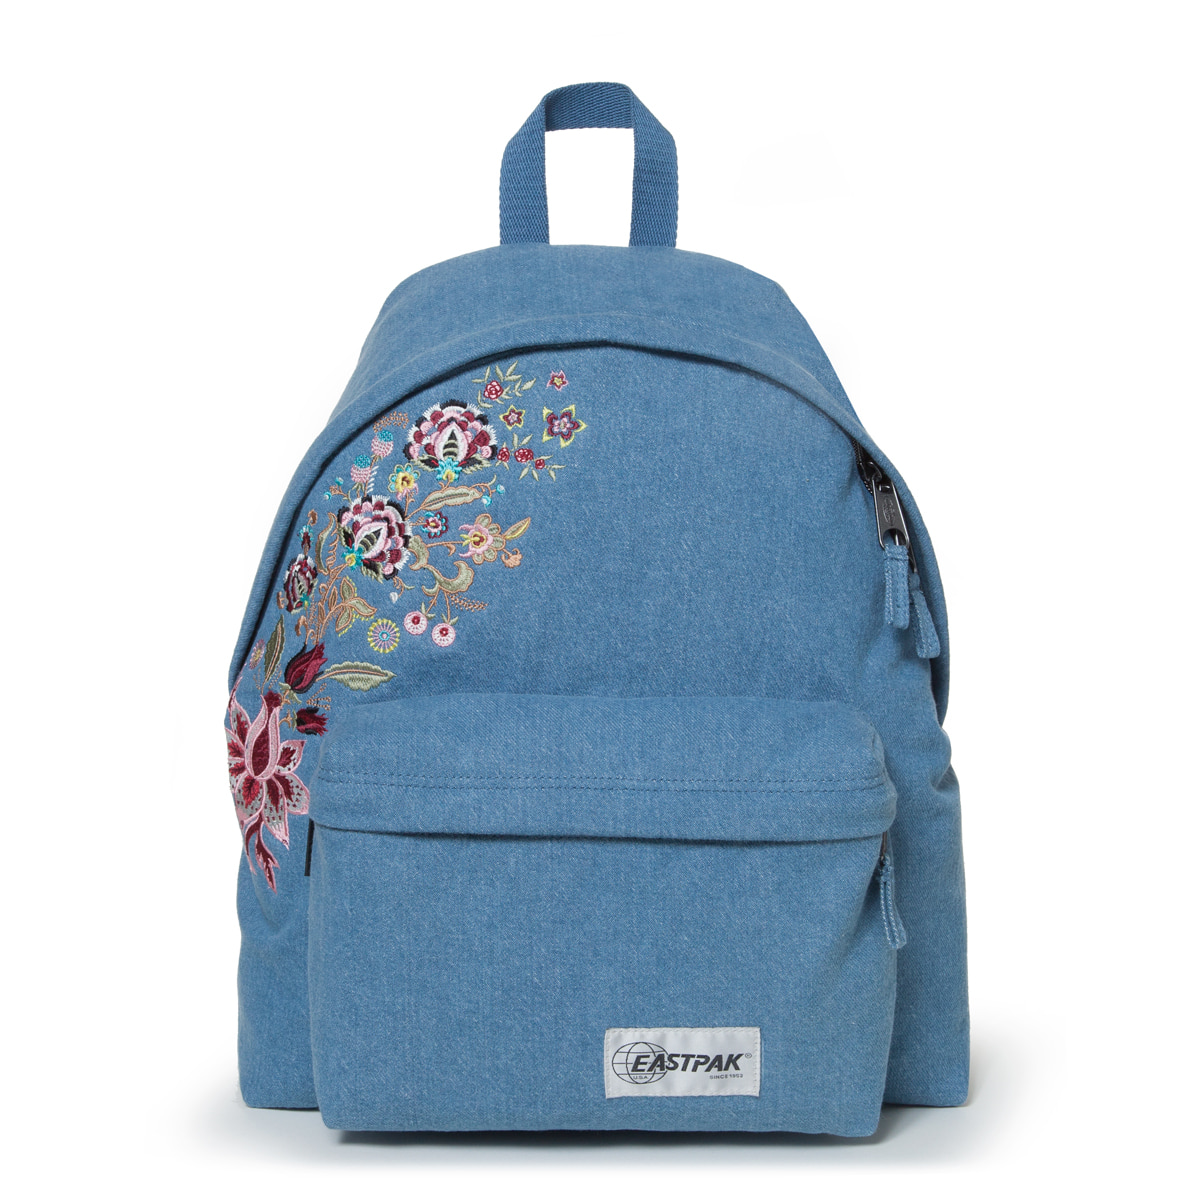 [EASTPAK] PRINCESS GRUNGE 백팩 패디드 파커 EICBA15 17U